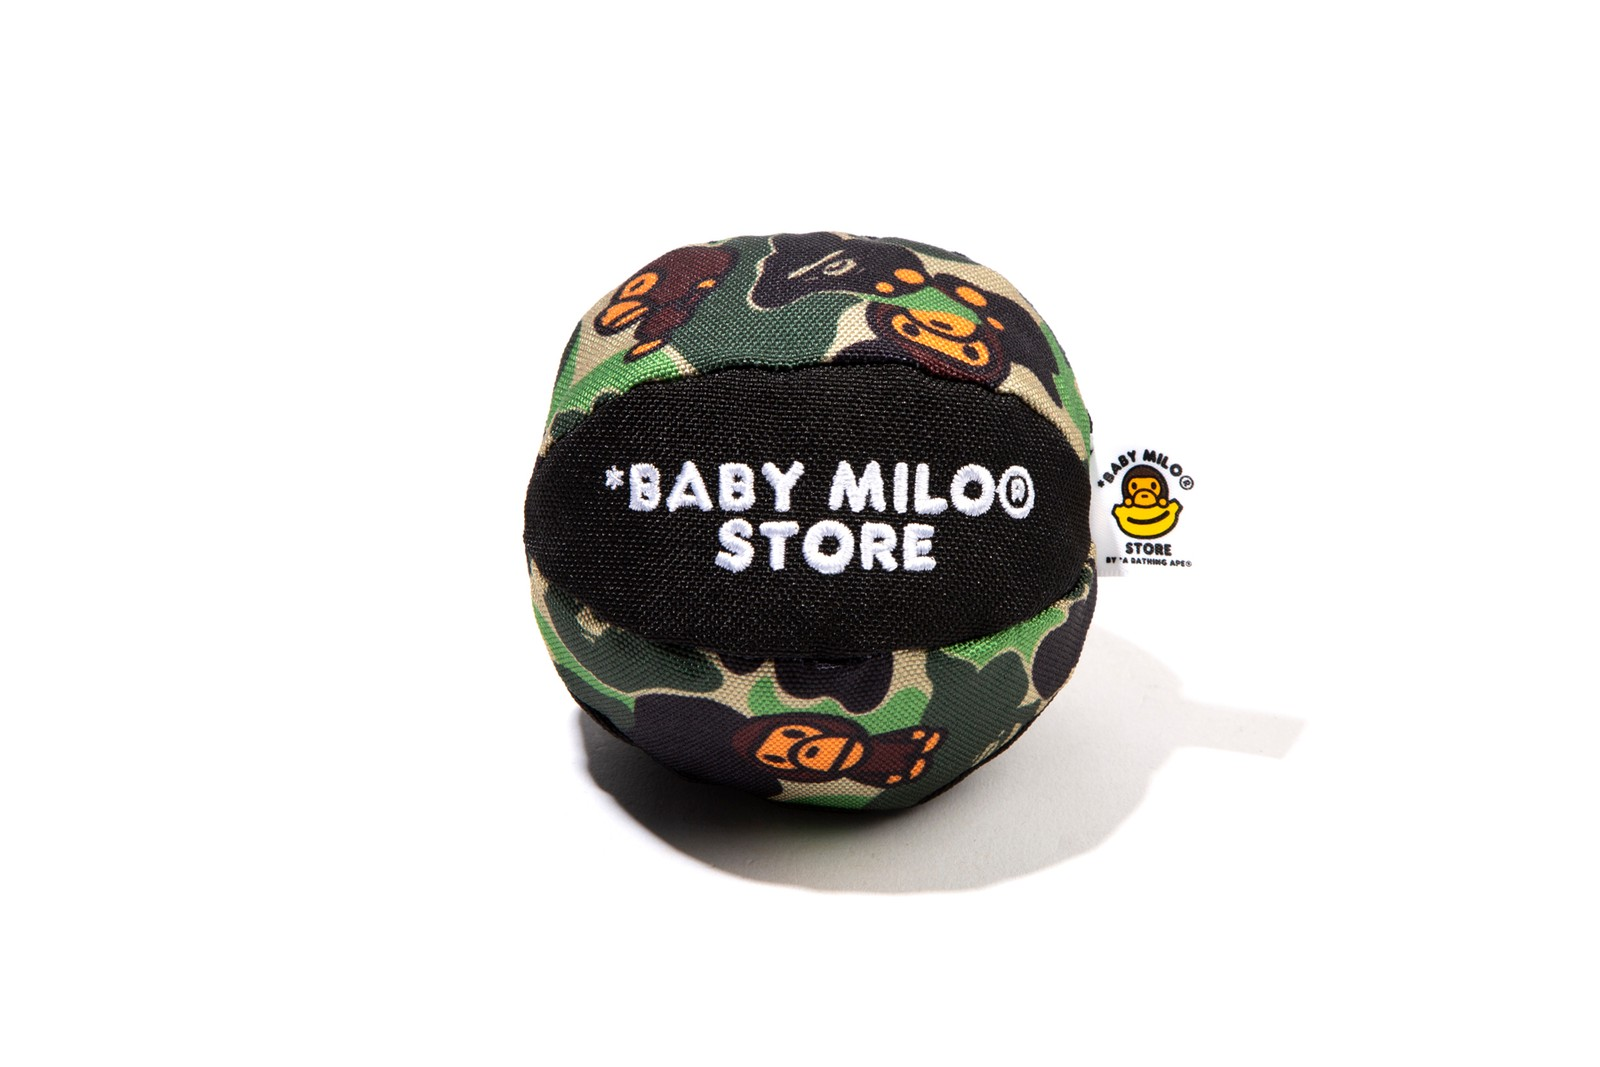 Baby Milo Pet Accessories Fall/Winter 2019 dogs cats camo print bape a bathing ape beds bags toys ape head